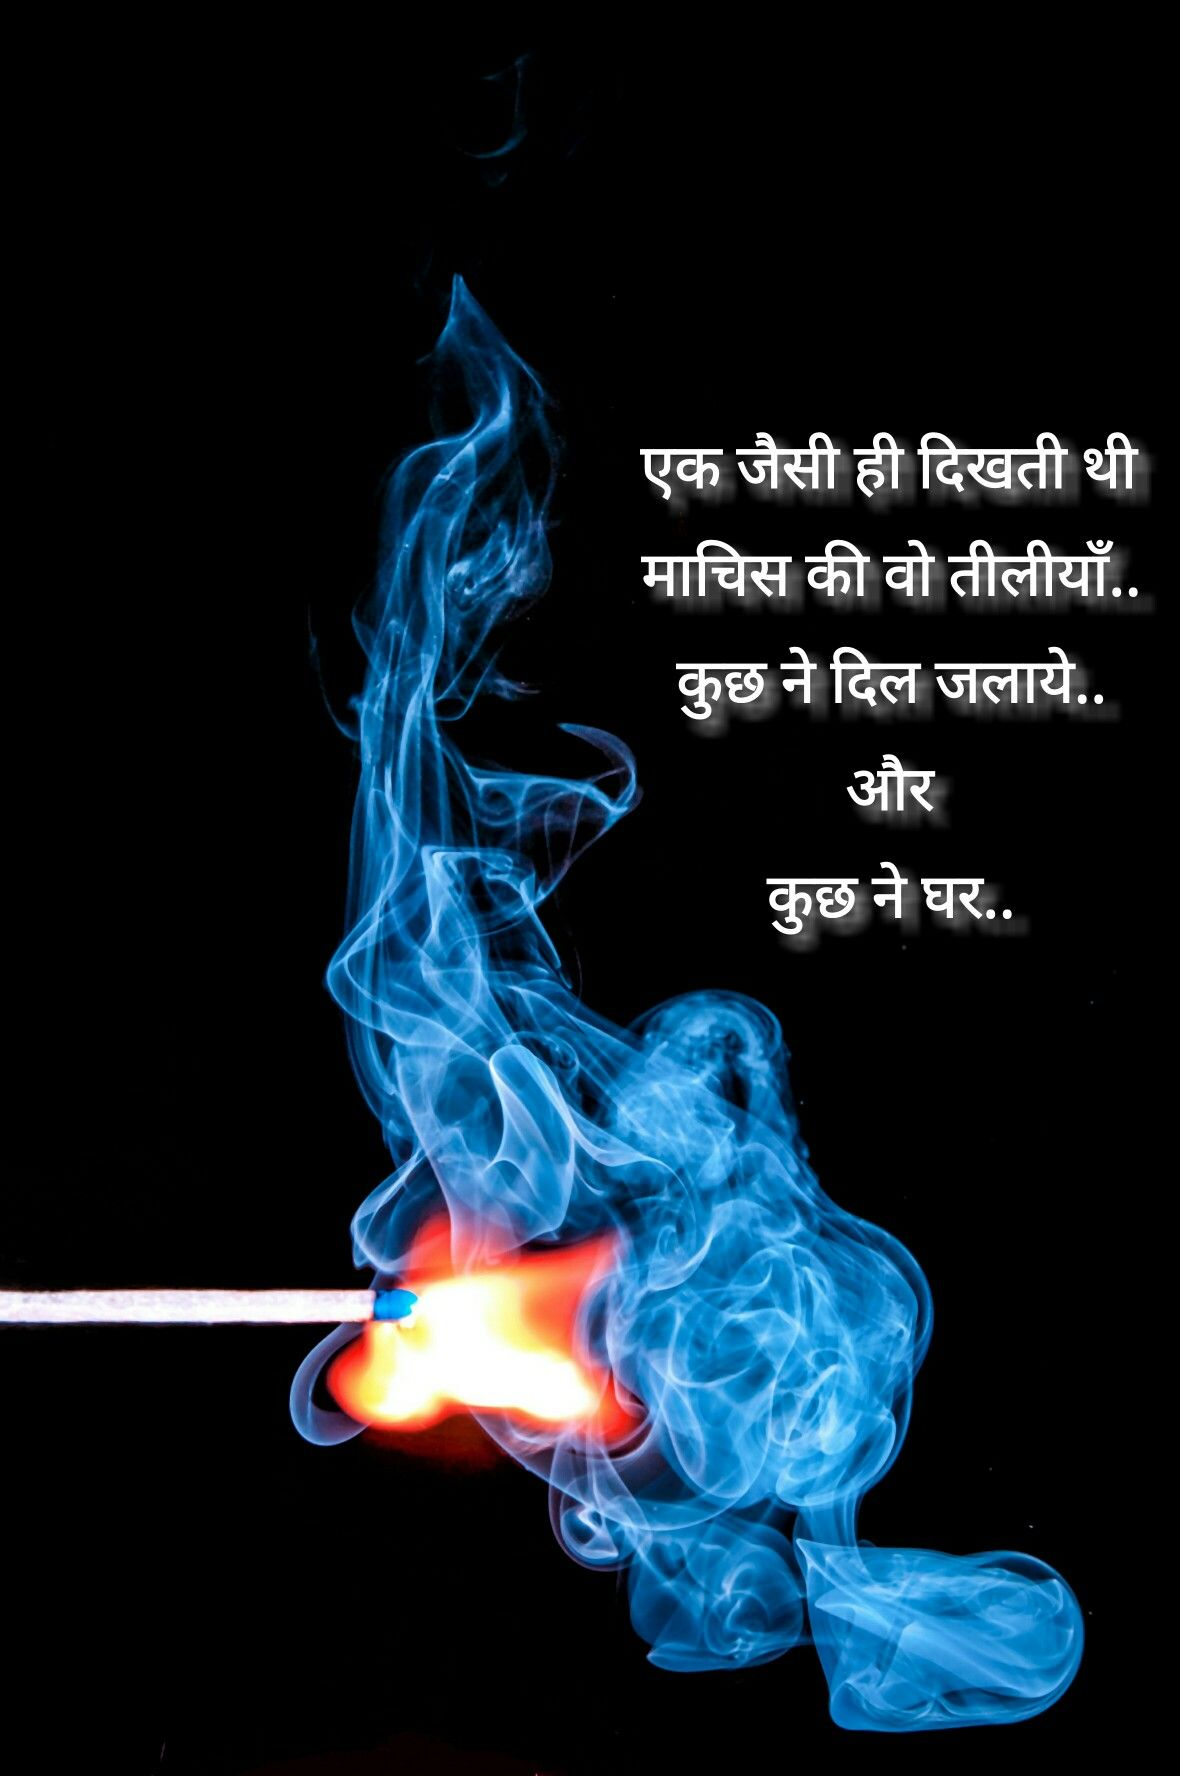 मचस Quotes Hindi Words Lines Fire Prasadik Word Line